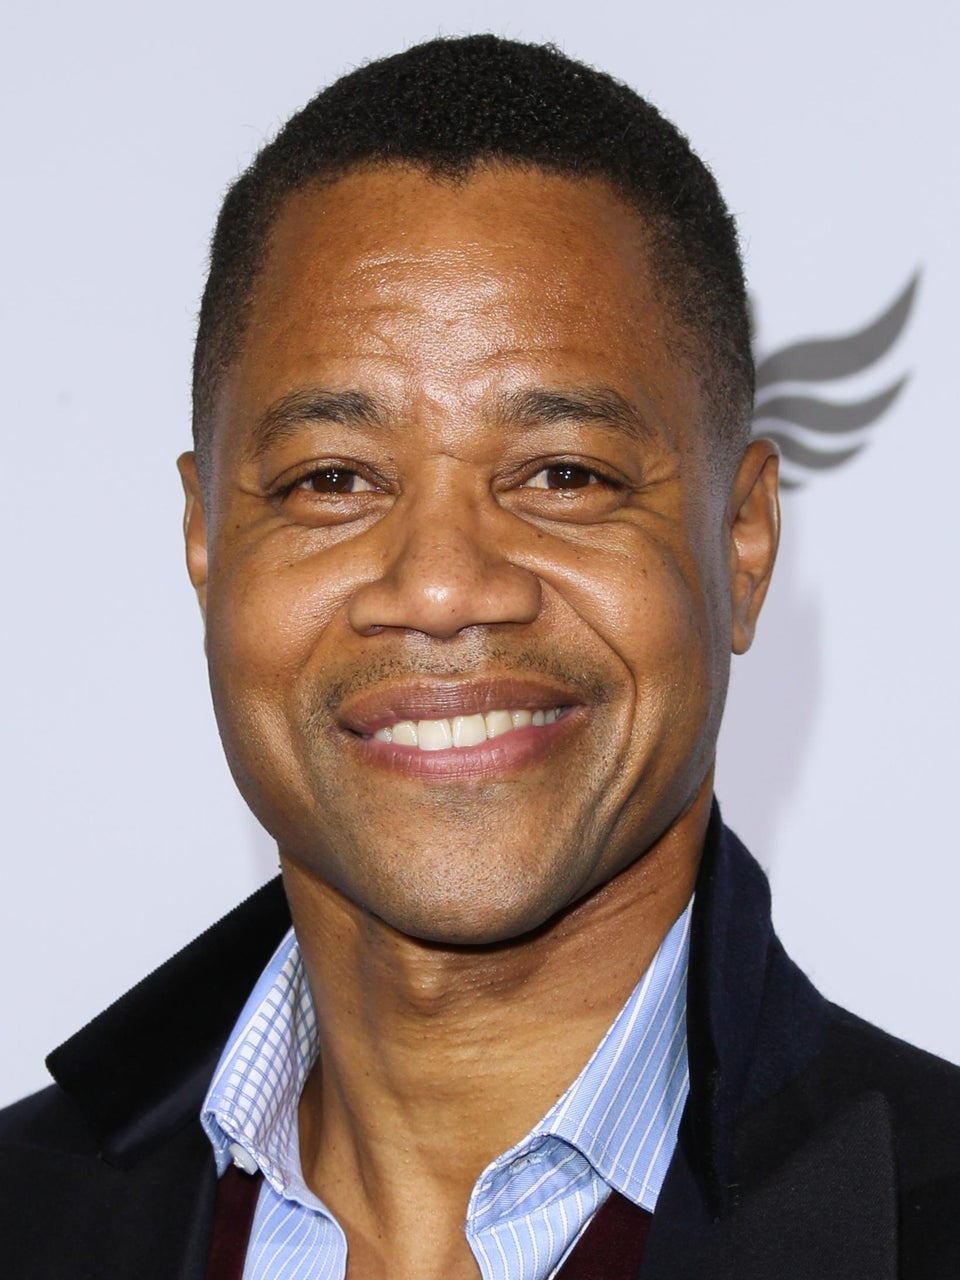 Cuba Gooding Explains Why He Broke Down and 'Wept' While Filming The People v. O.J. Simpson